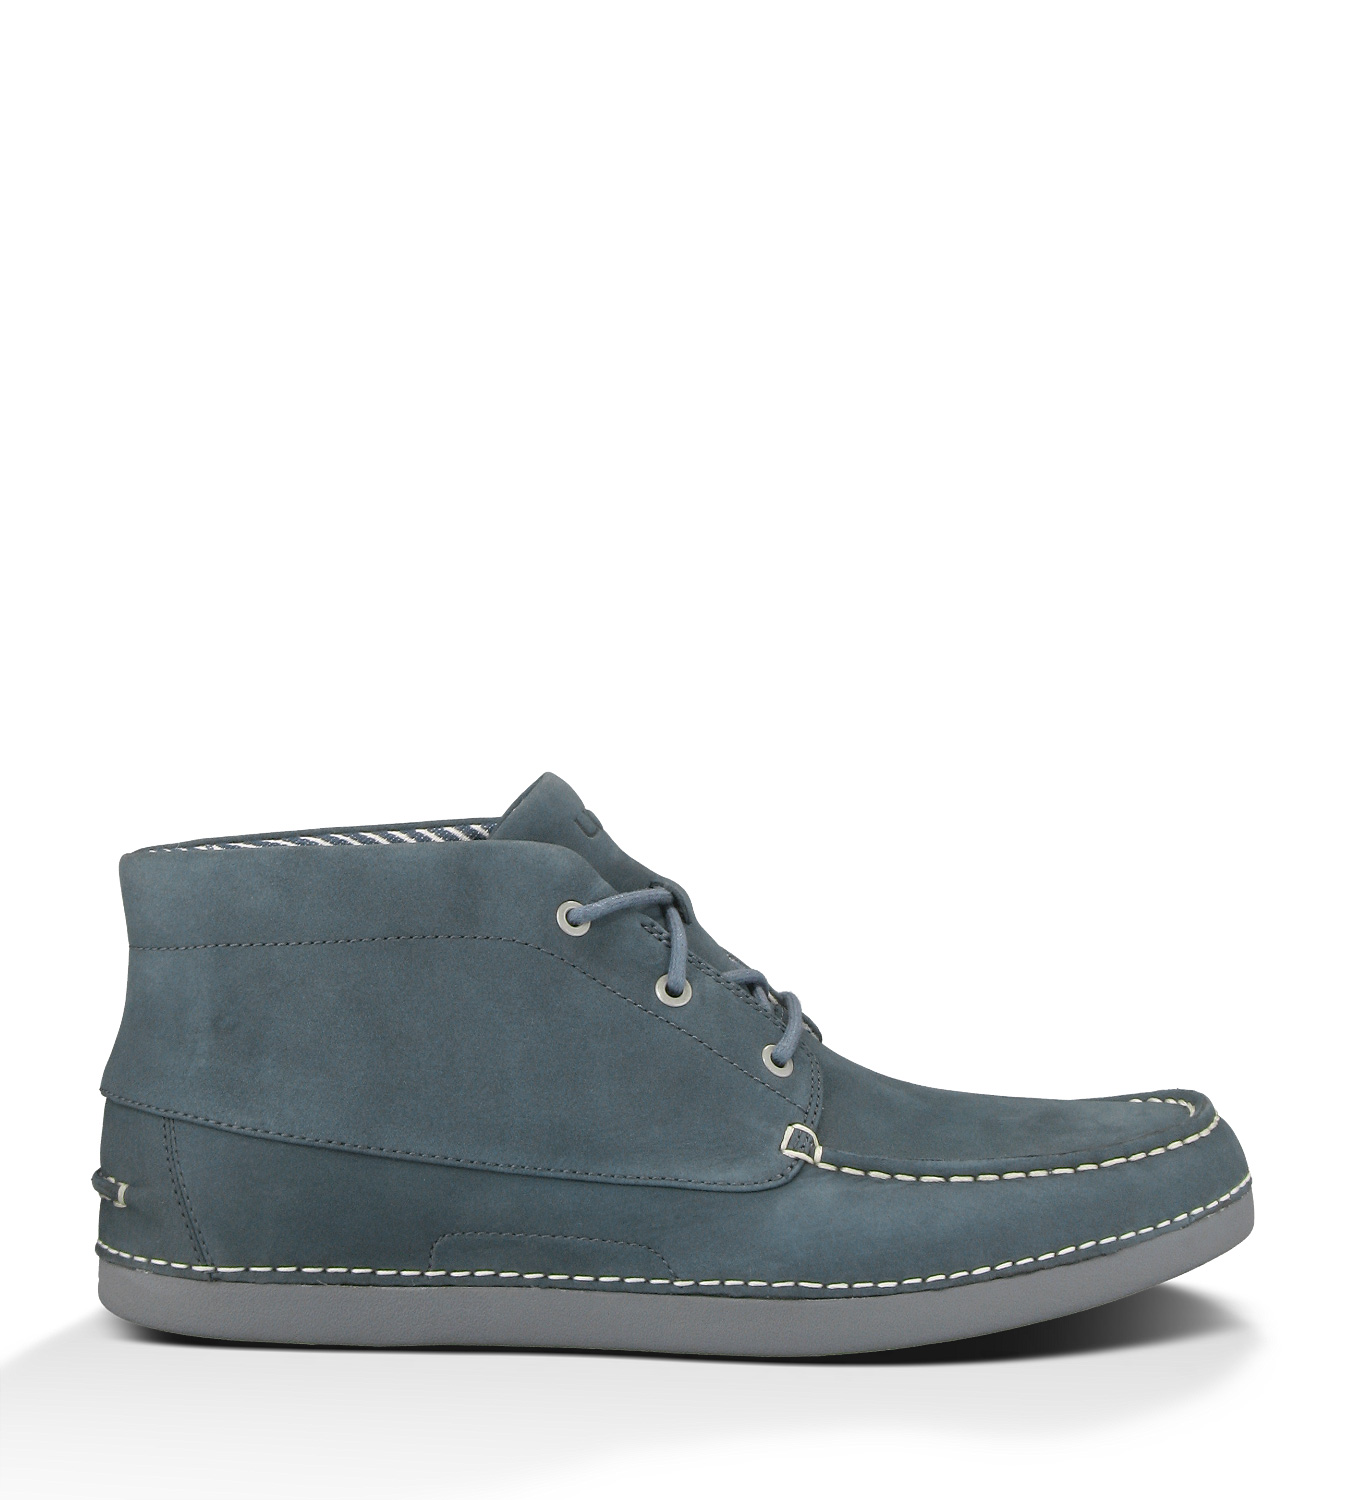 1003777 NGHT 1 UGG for Men Introduces the Kaldwell Chukka for Spring 2013